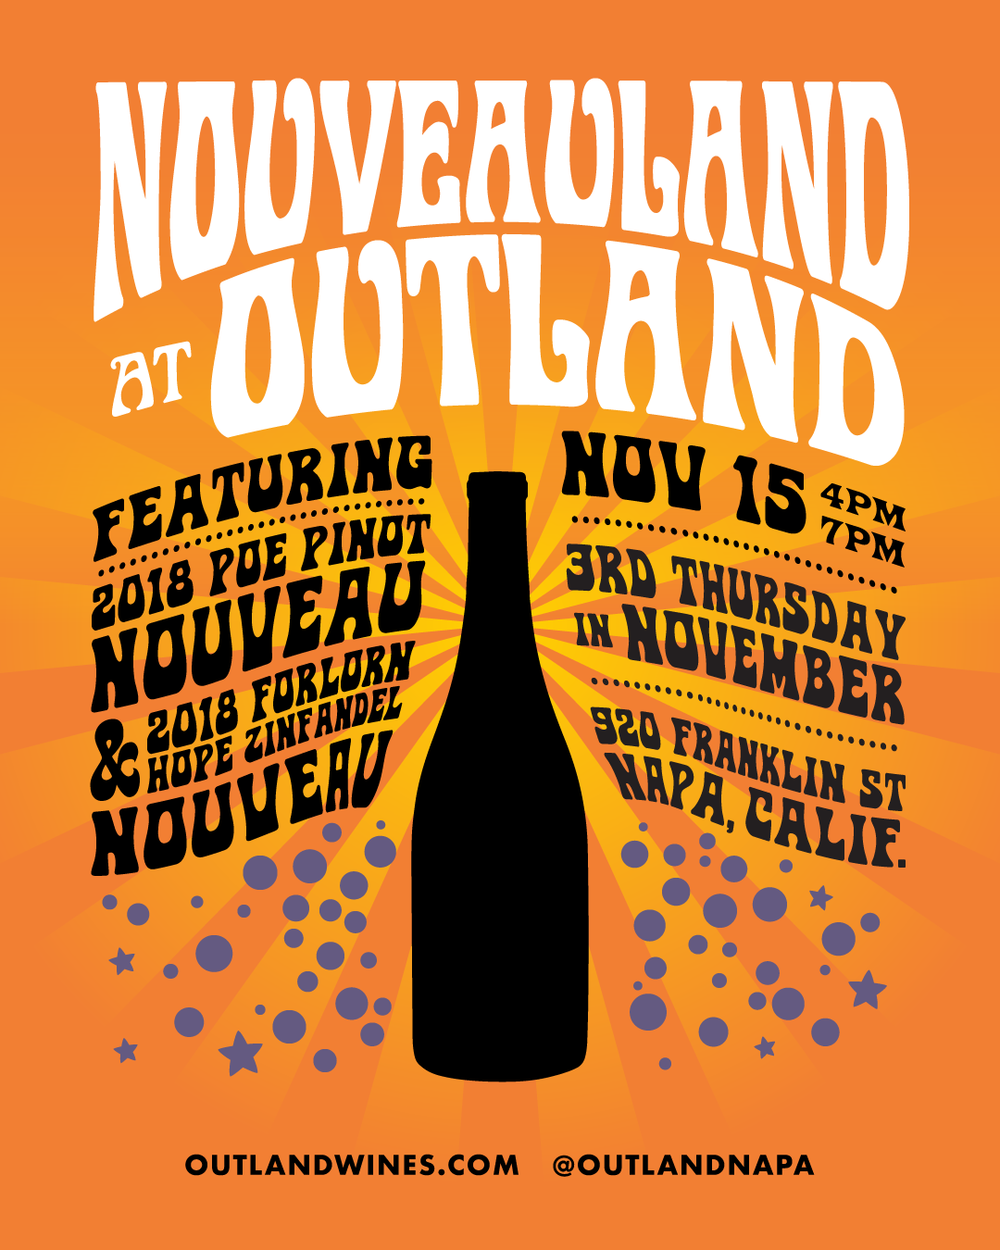 Join us for  NOUVEAULAND at OUTLAND  on Thursday, November 15th from 4-7pm to celebrate the release of the 2018 POE Pinot Nouveau and the inaugural vintage of the 2018 Forlorn Hope 'Zinny Man' Zinfandel Nouveau. We'll be pouring both wines by the glass, and both bottlings will be available to purchase.